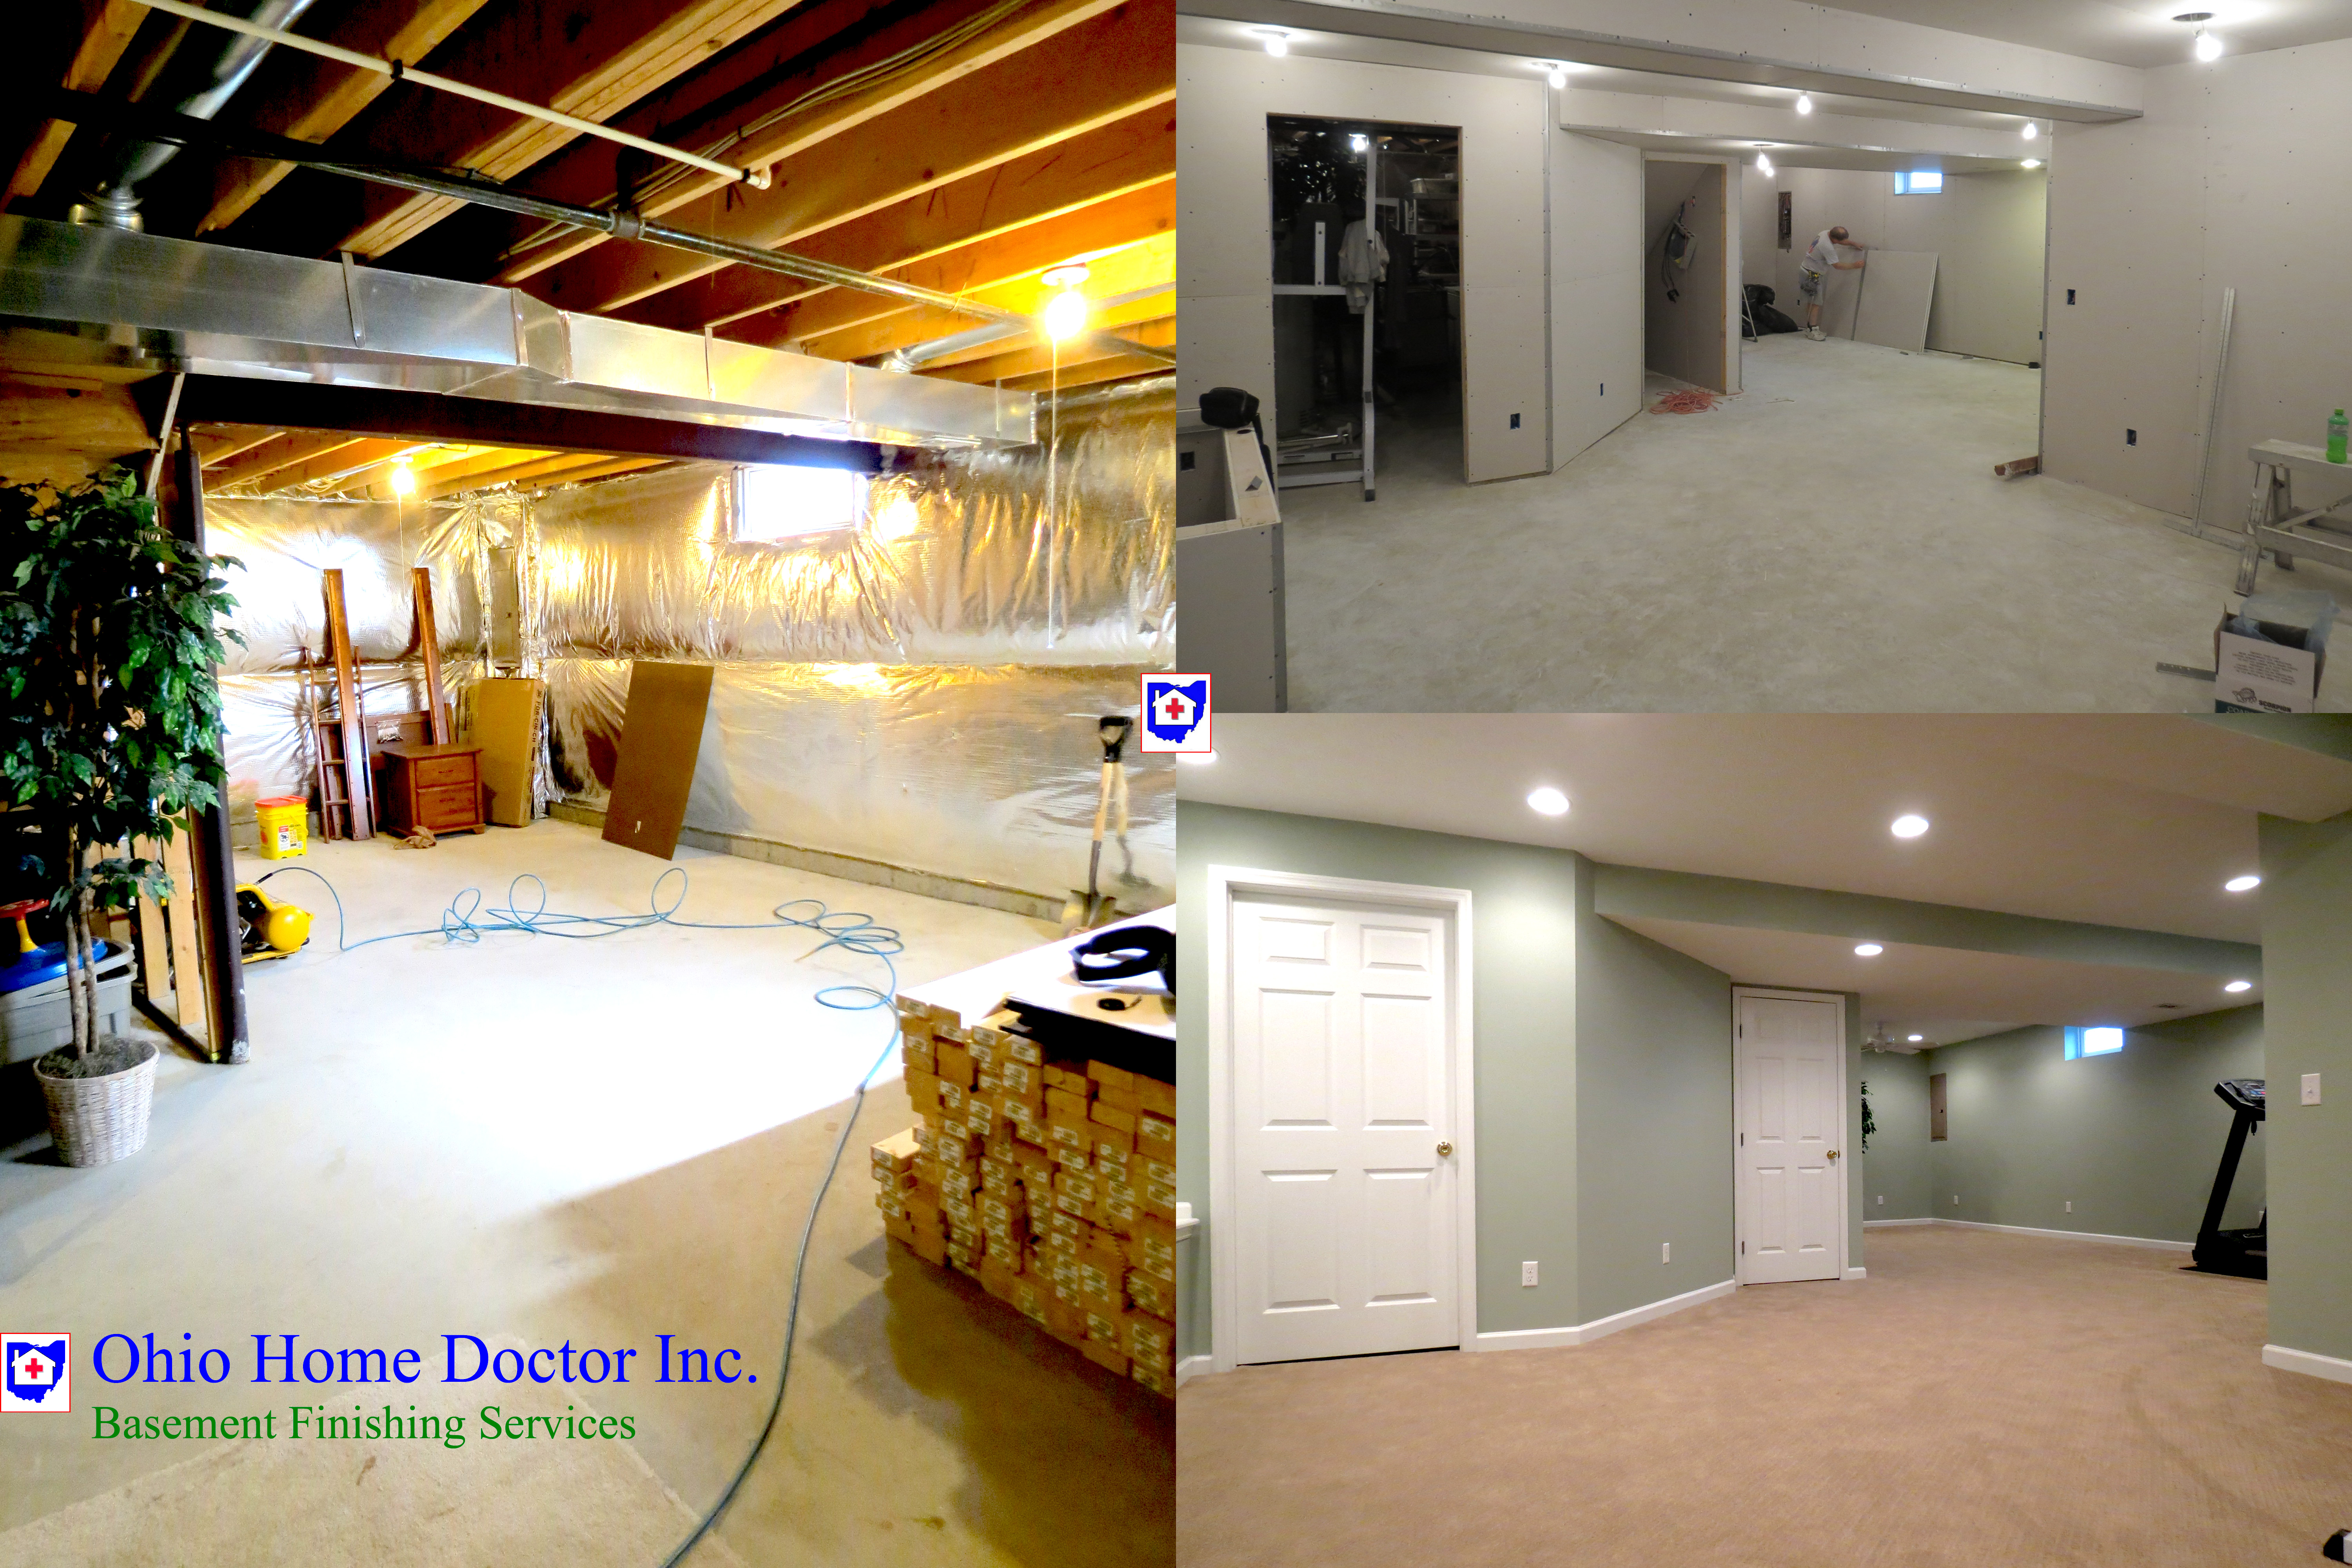 Basement Finishing Cincinnati Detailed Services And Costs - Basement doctor